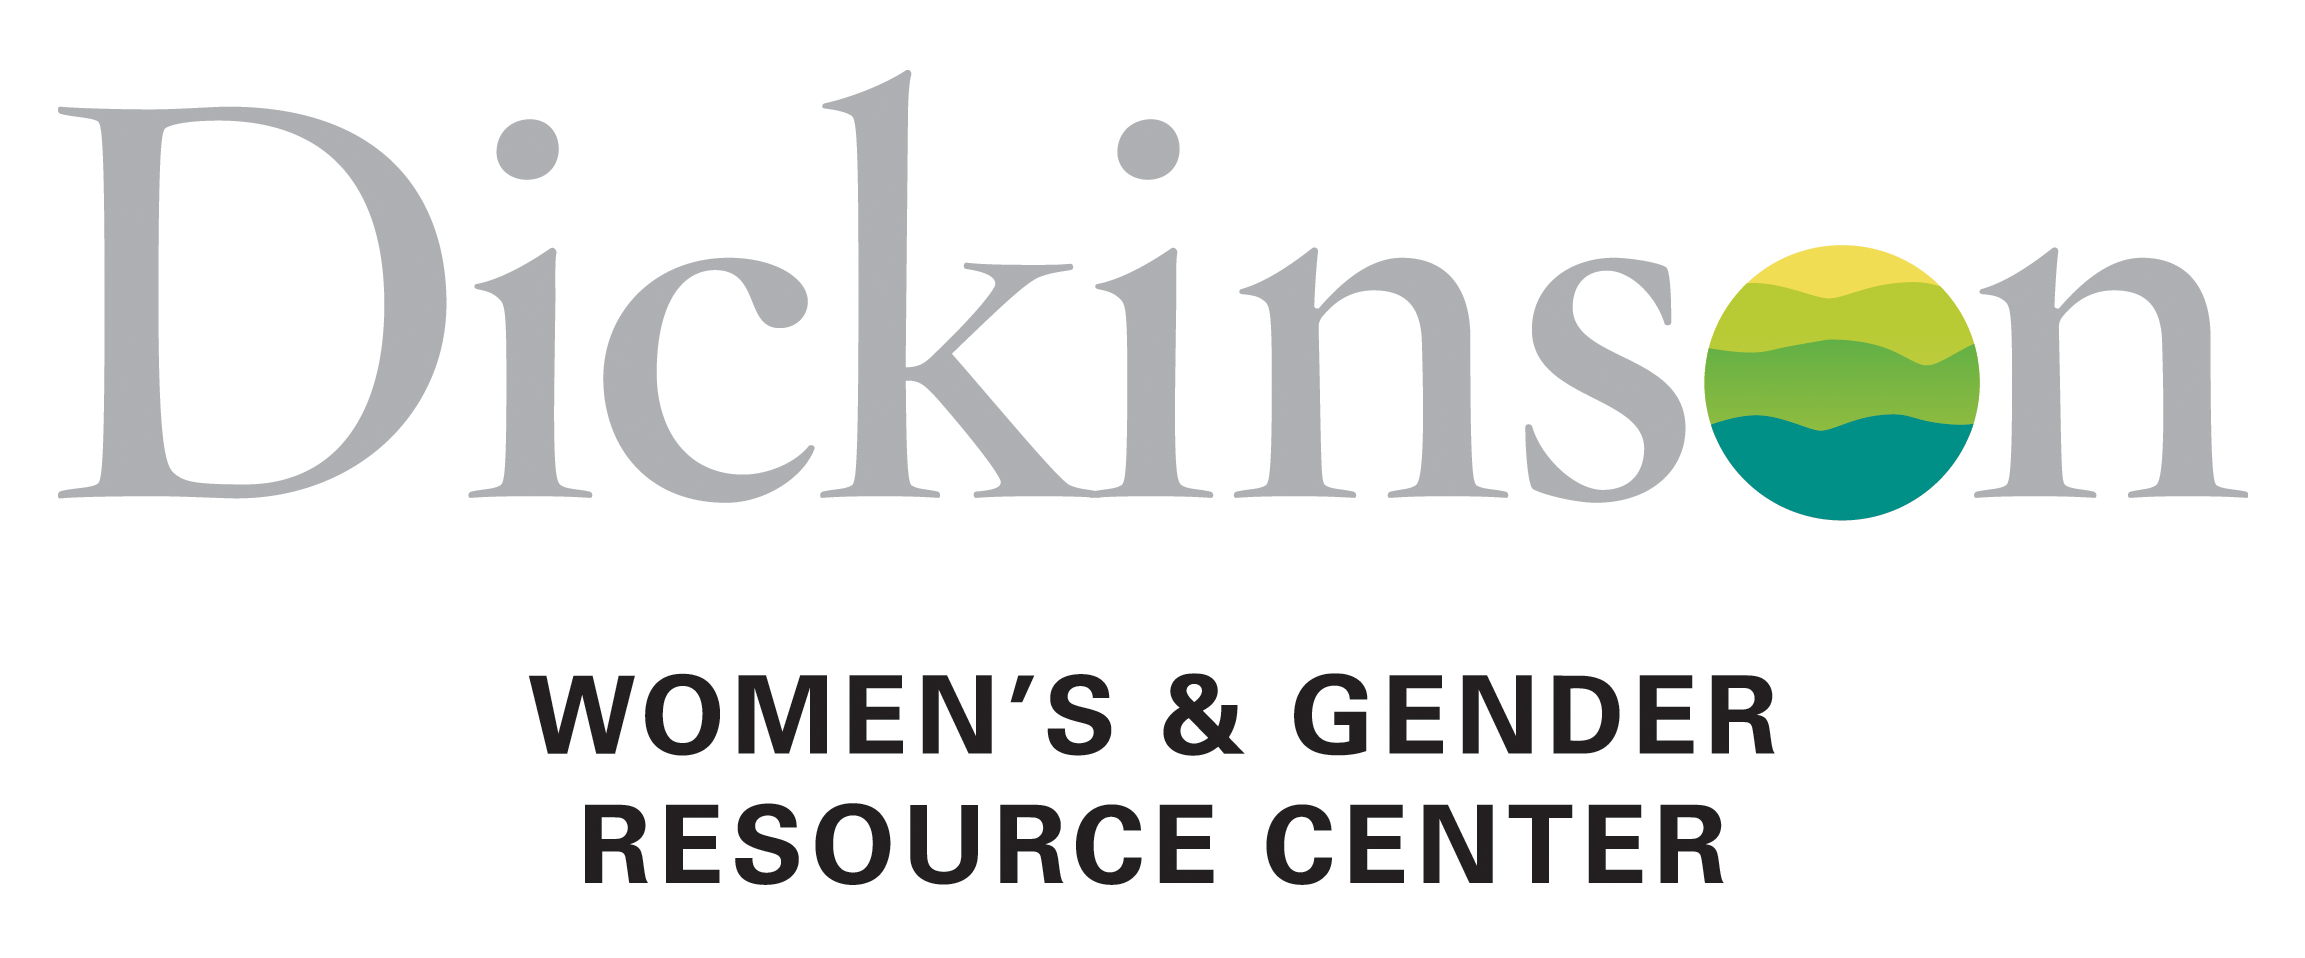 the women's and gender resource center